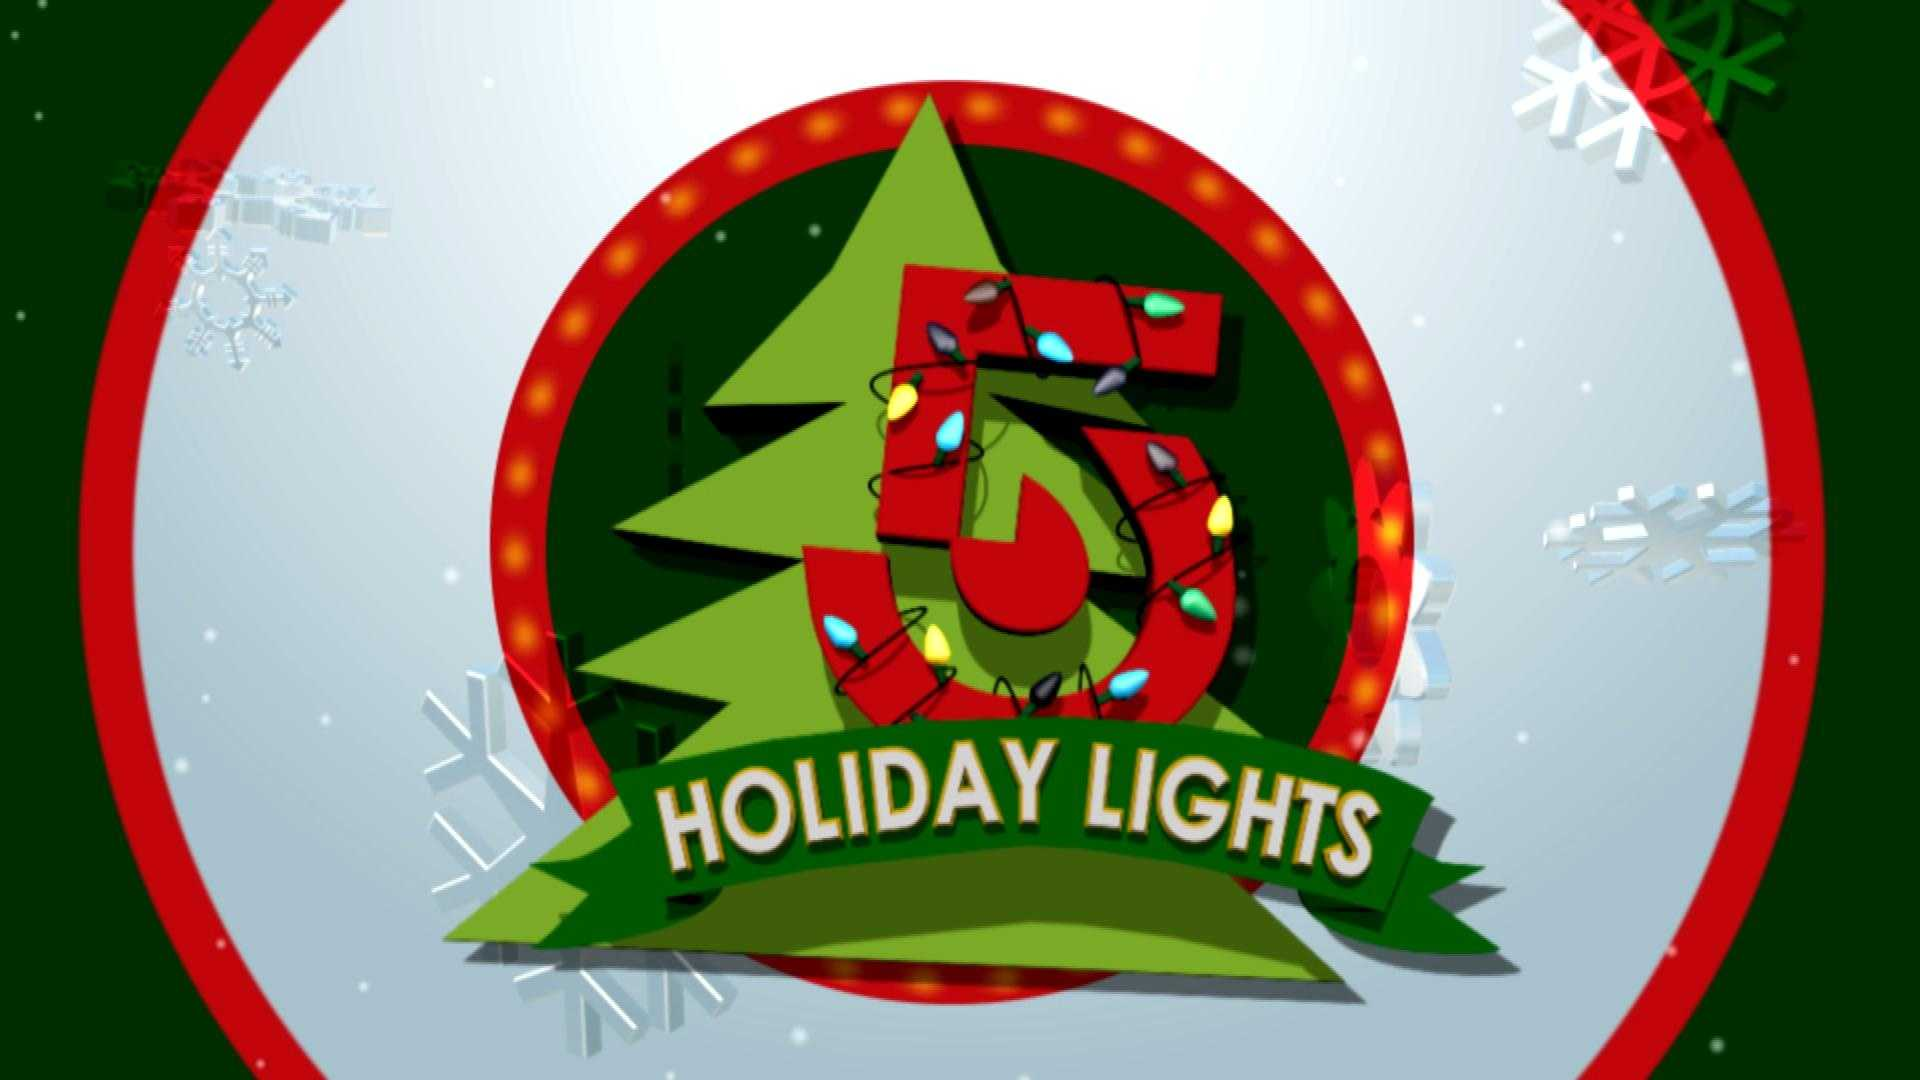 Tuesday, December 24: Holiday Lights